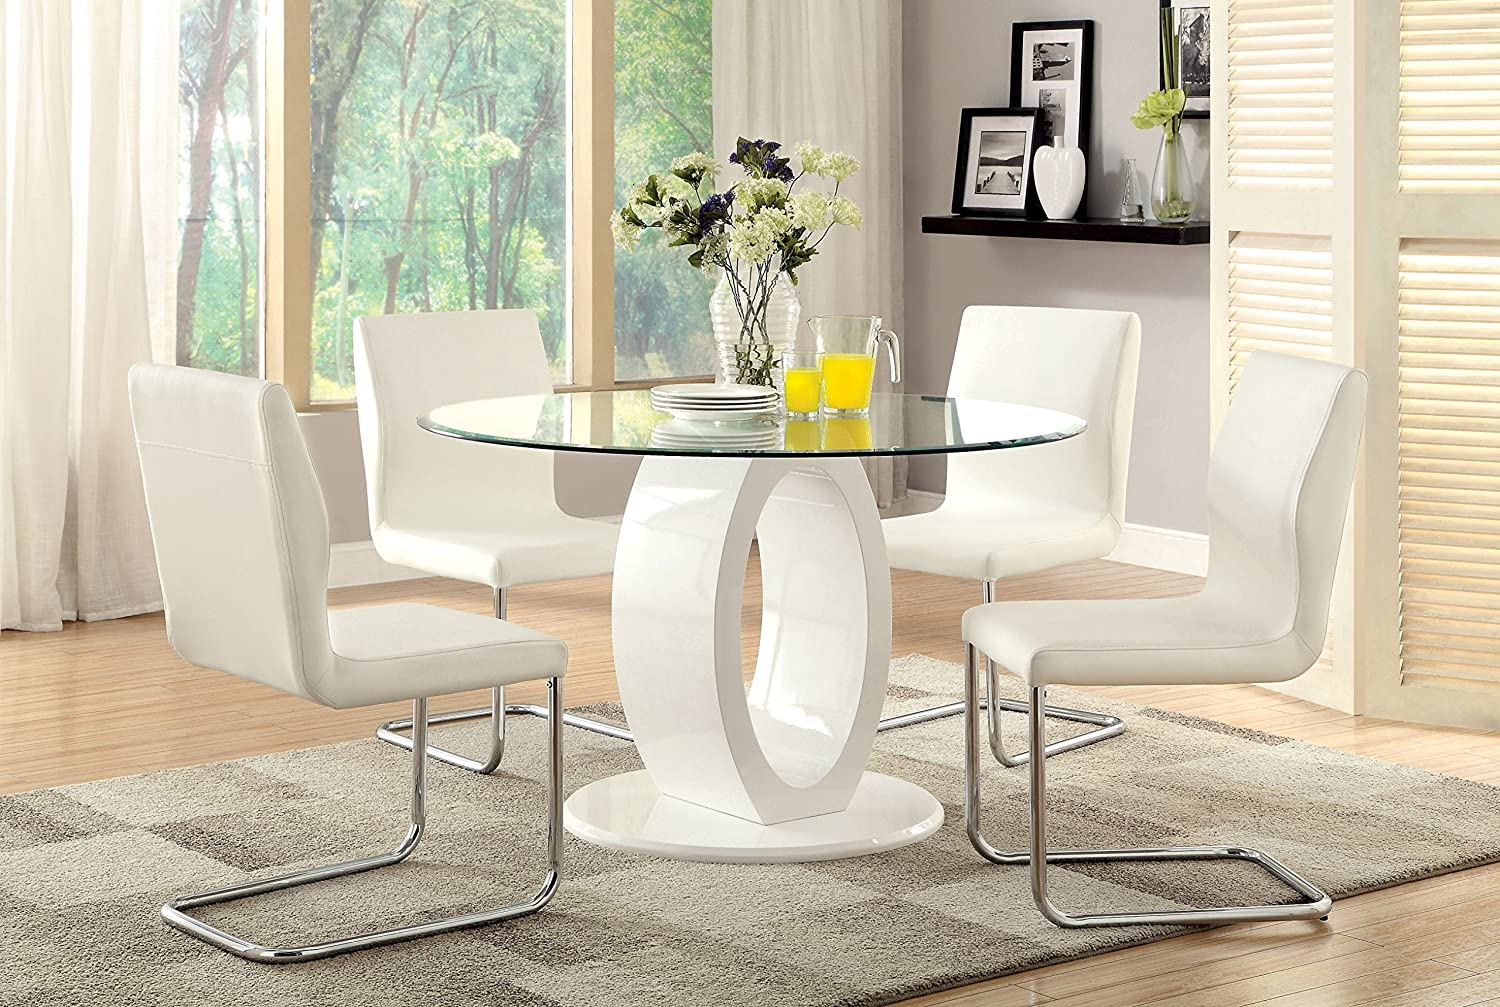 Amazoncom Furniture Of America Quezon Piece Round Glass Top - Round dining room table with 4 chairs